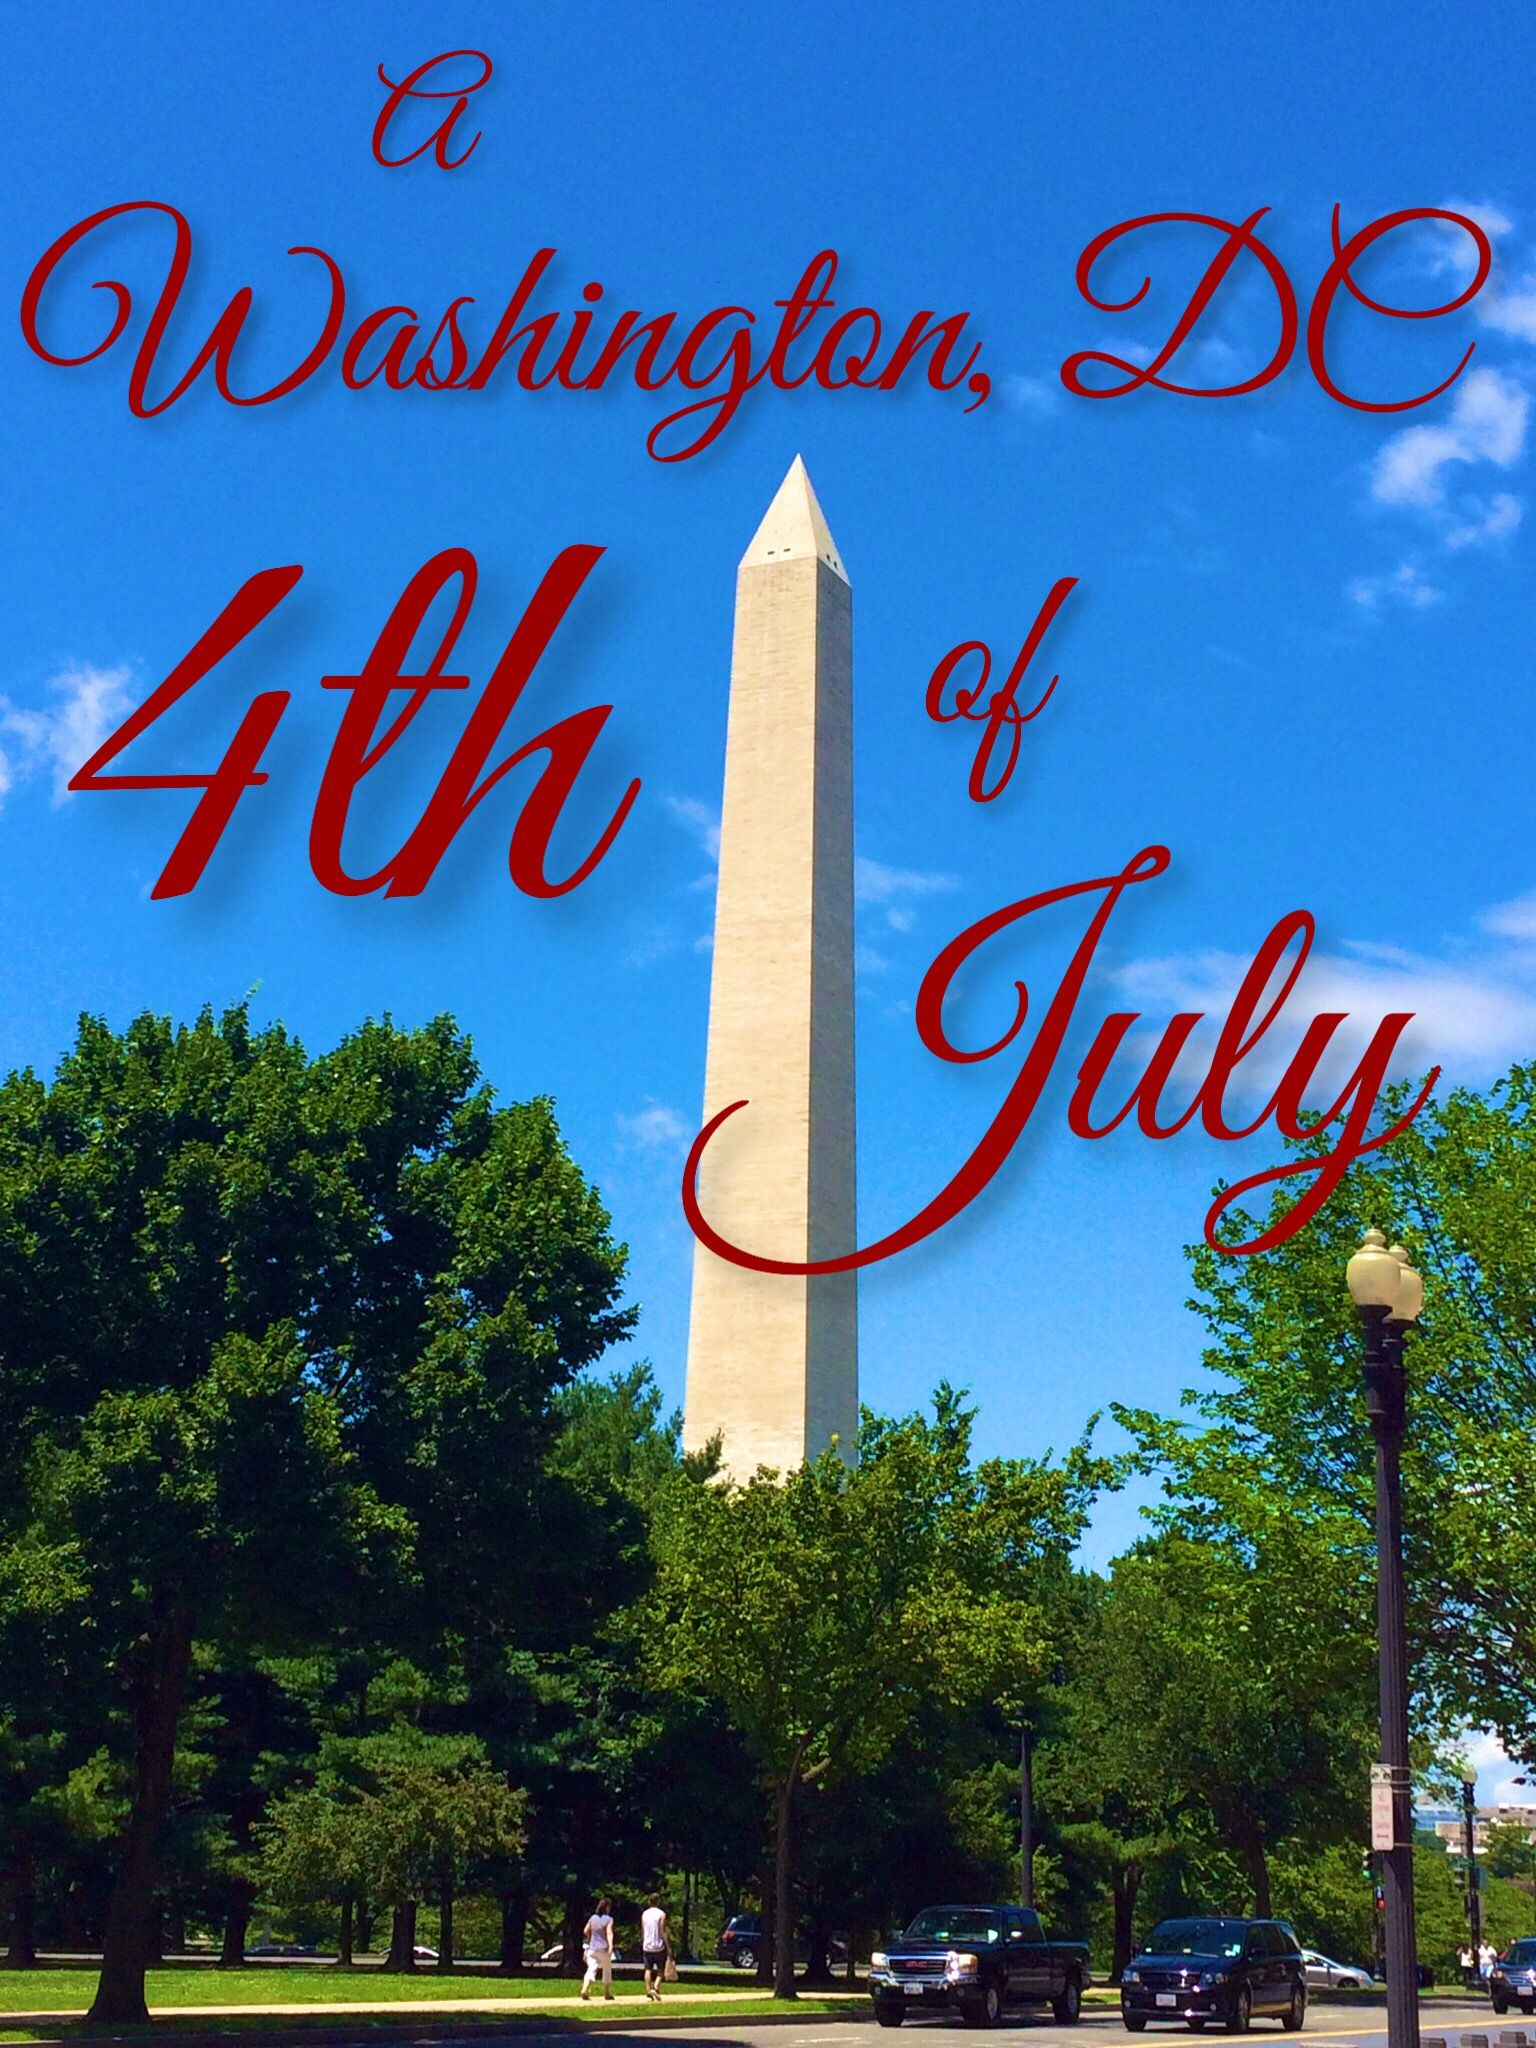 4th of July in Washington, DC!